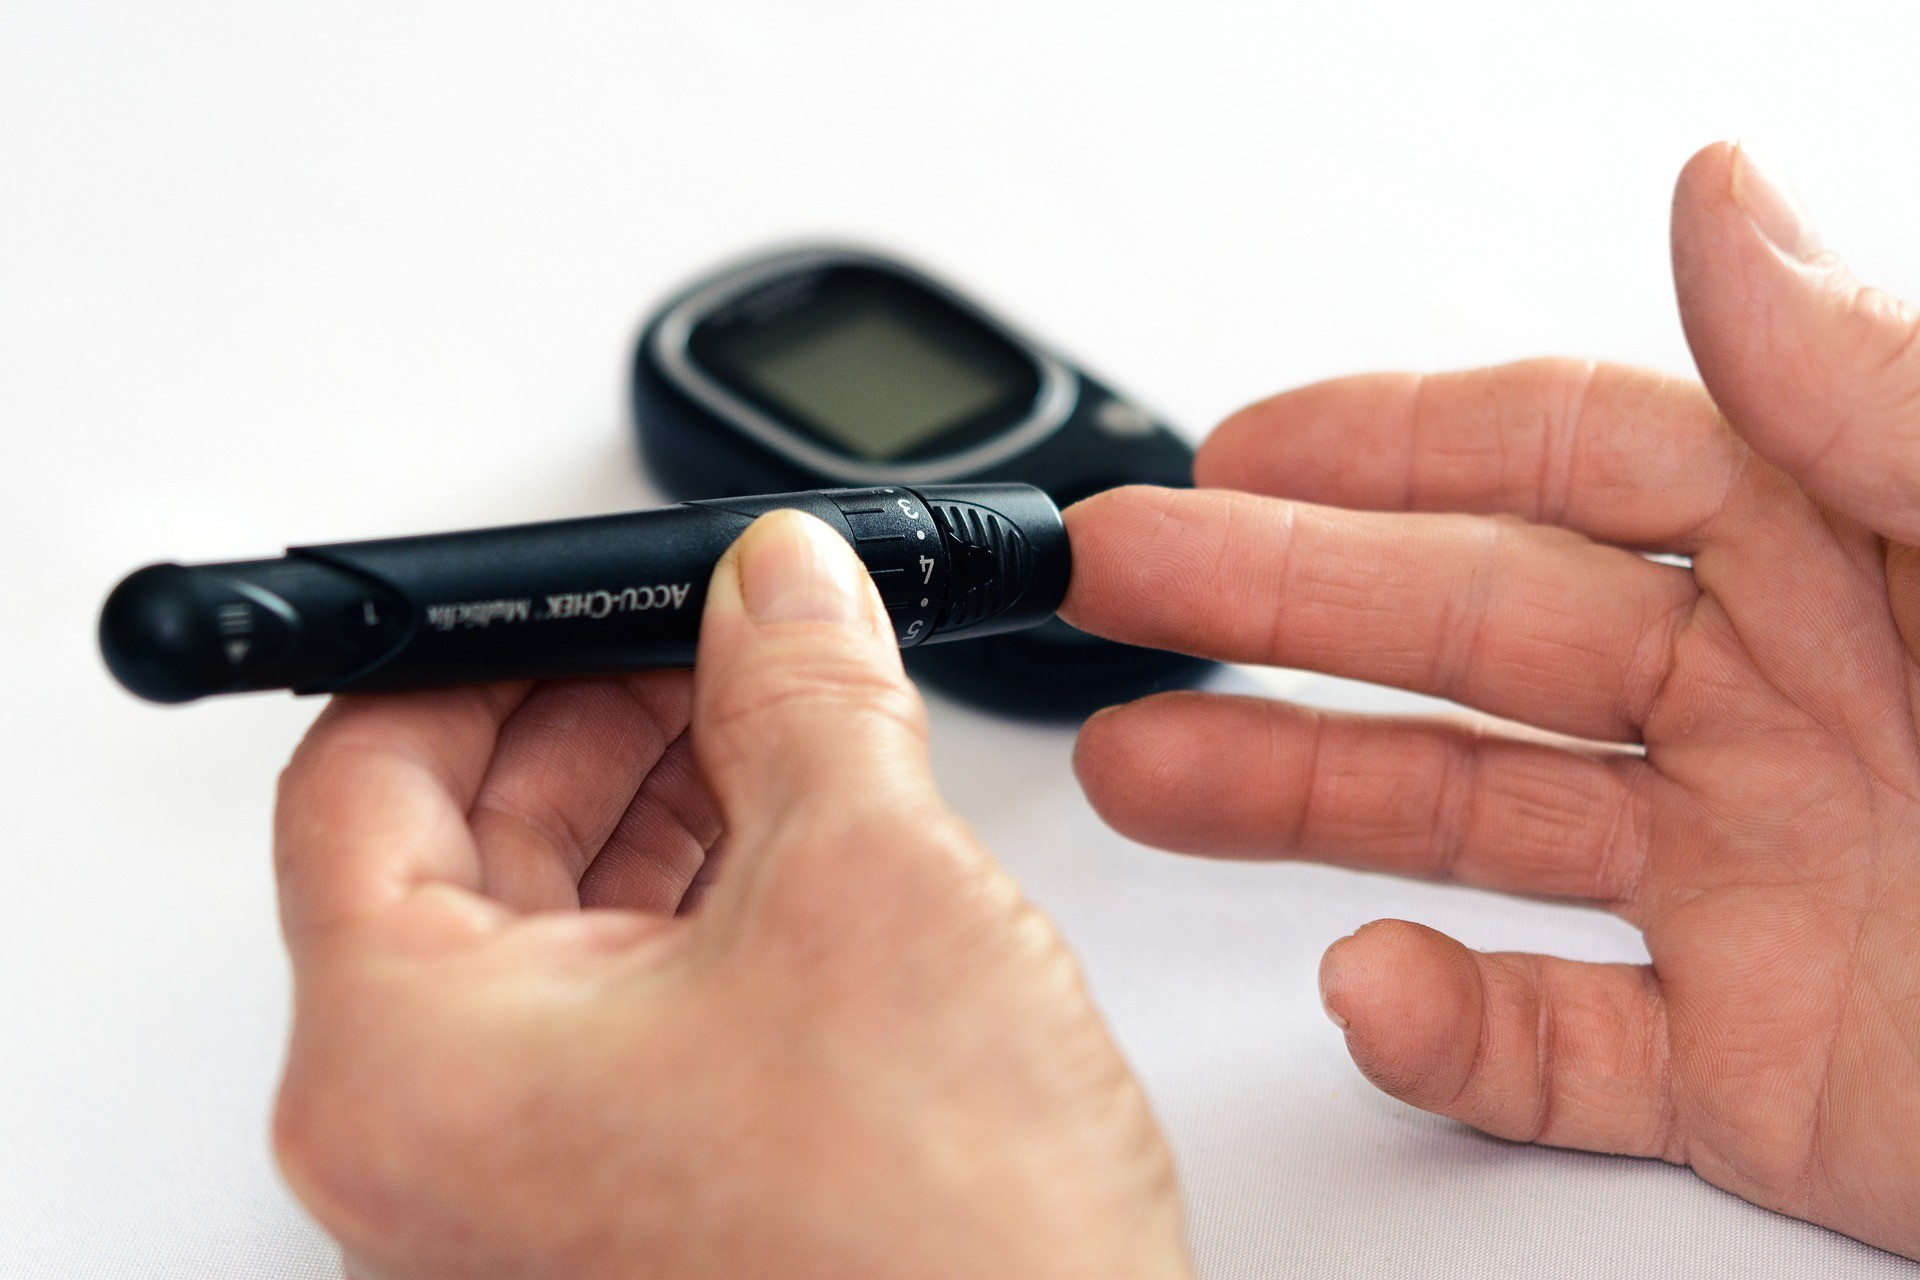 Diabetic male pricking his fingertip with a needle to check blood sugar levels